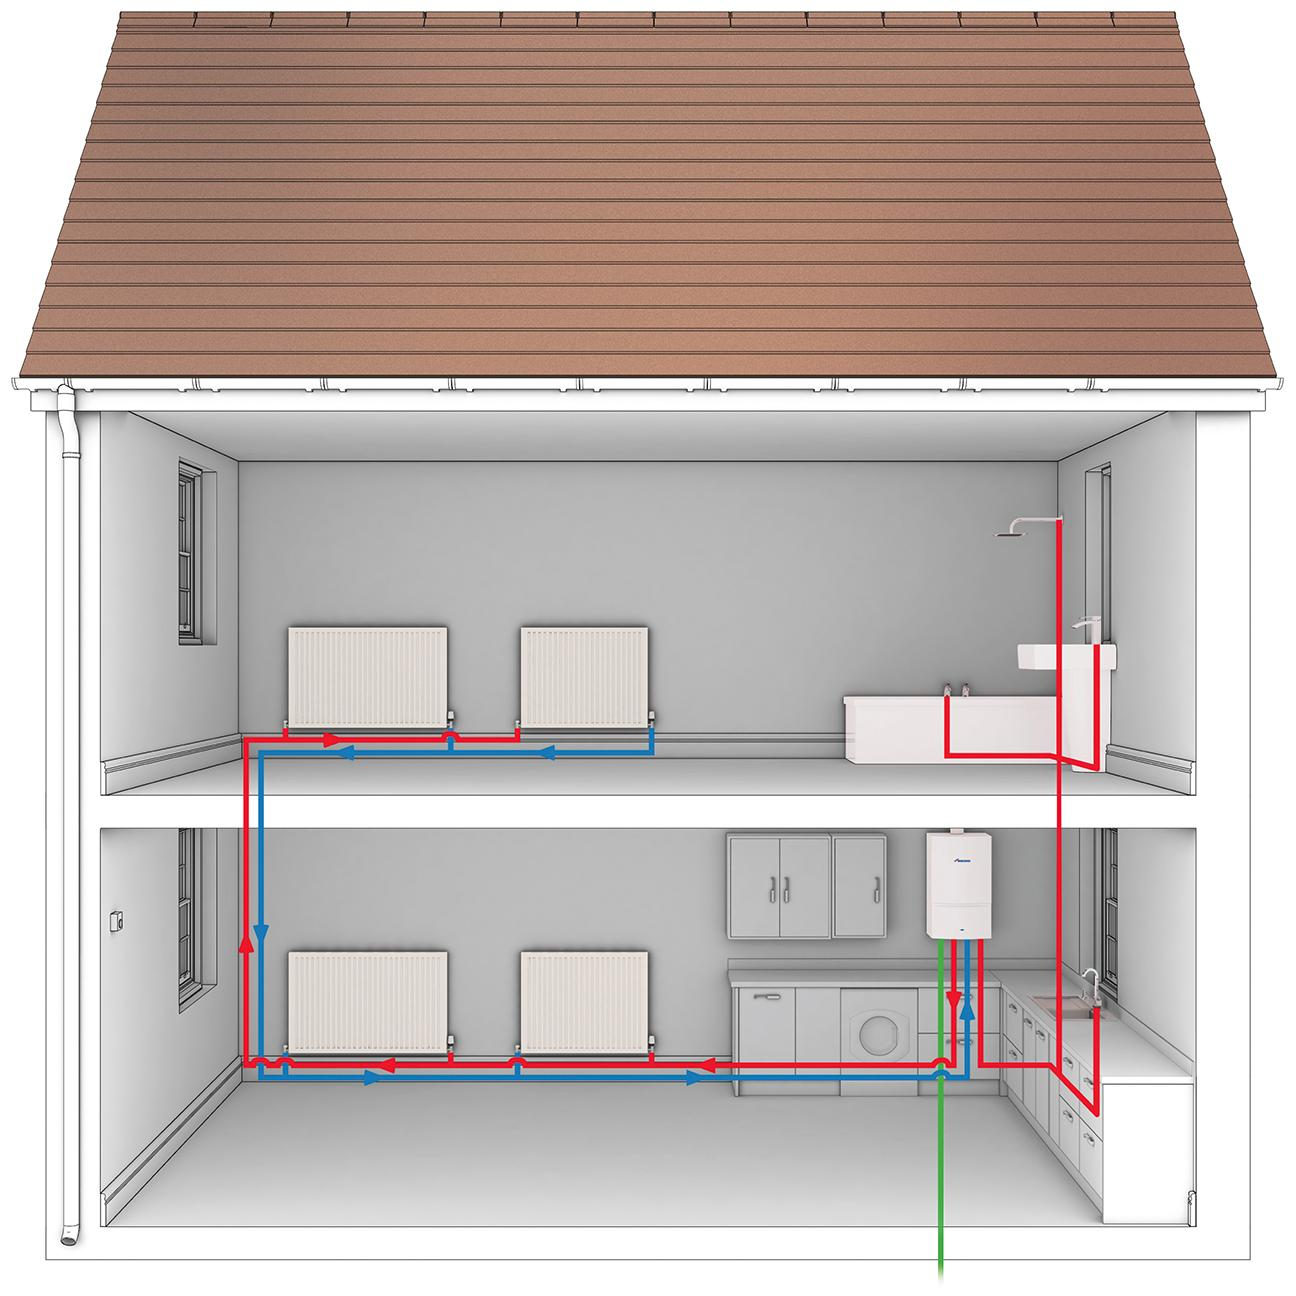 combi boiler central heating system diagram trane electric heat wiring installation choosing a aph plumbing